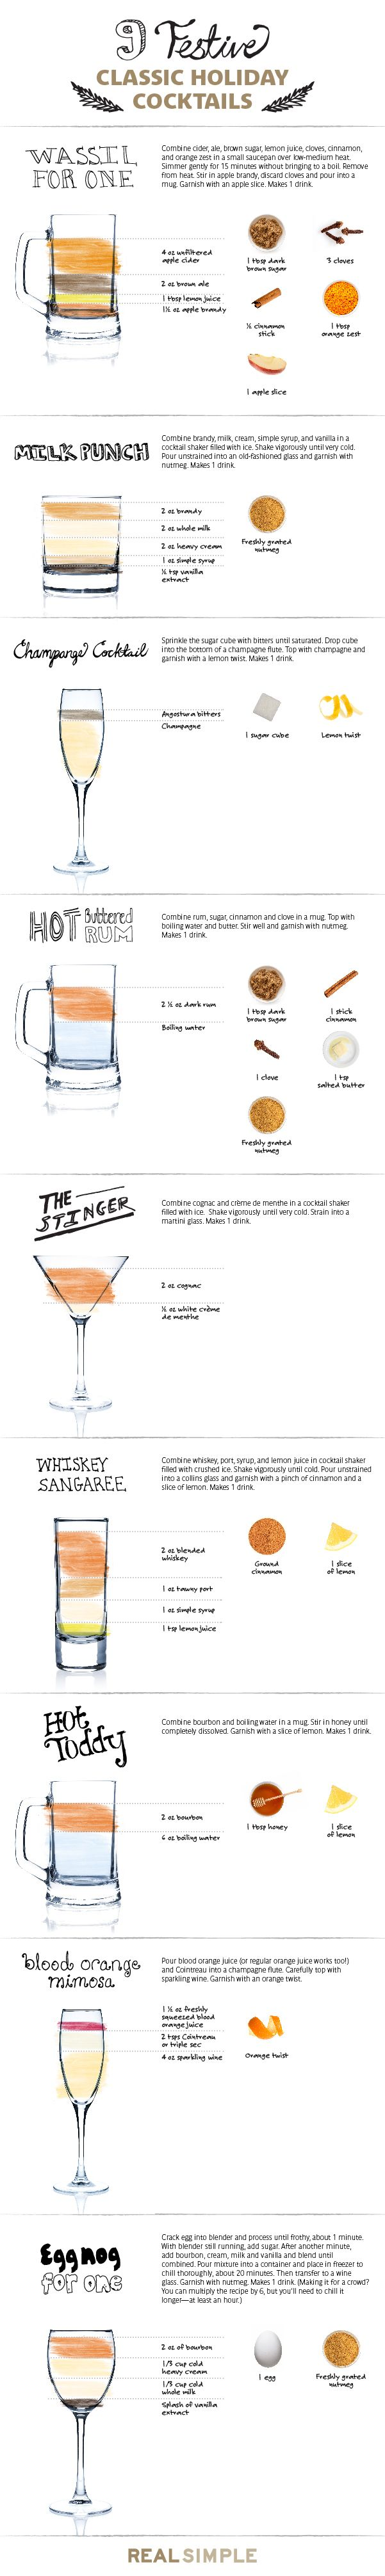 Hosting a holiday party? Or just having a festive night at home? Whip up one of these delicious drinks.